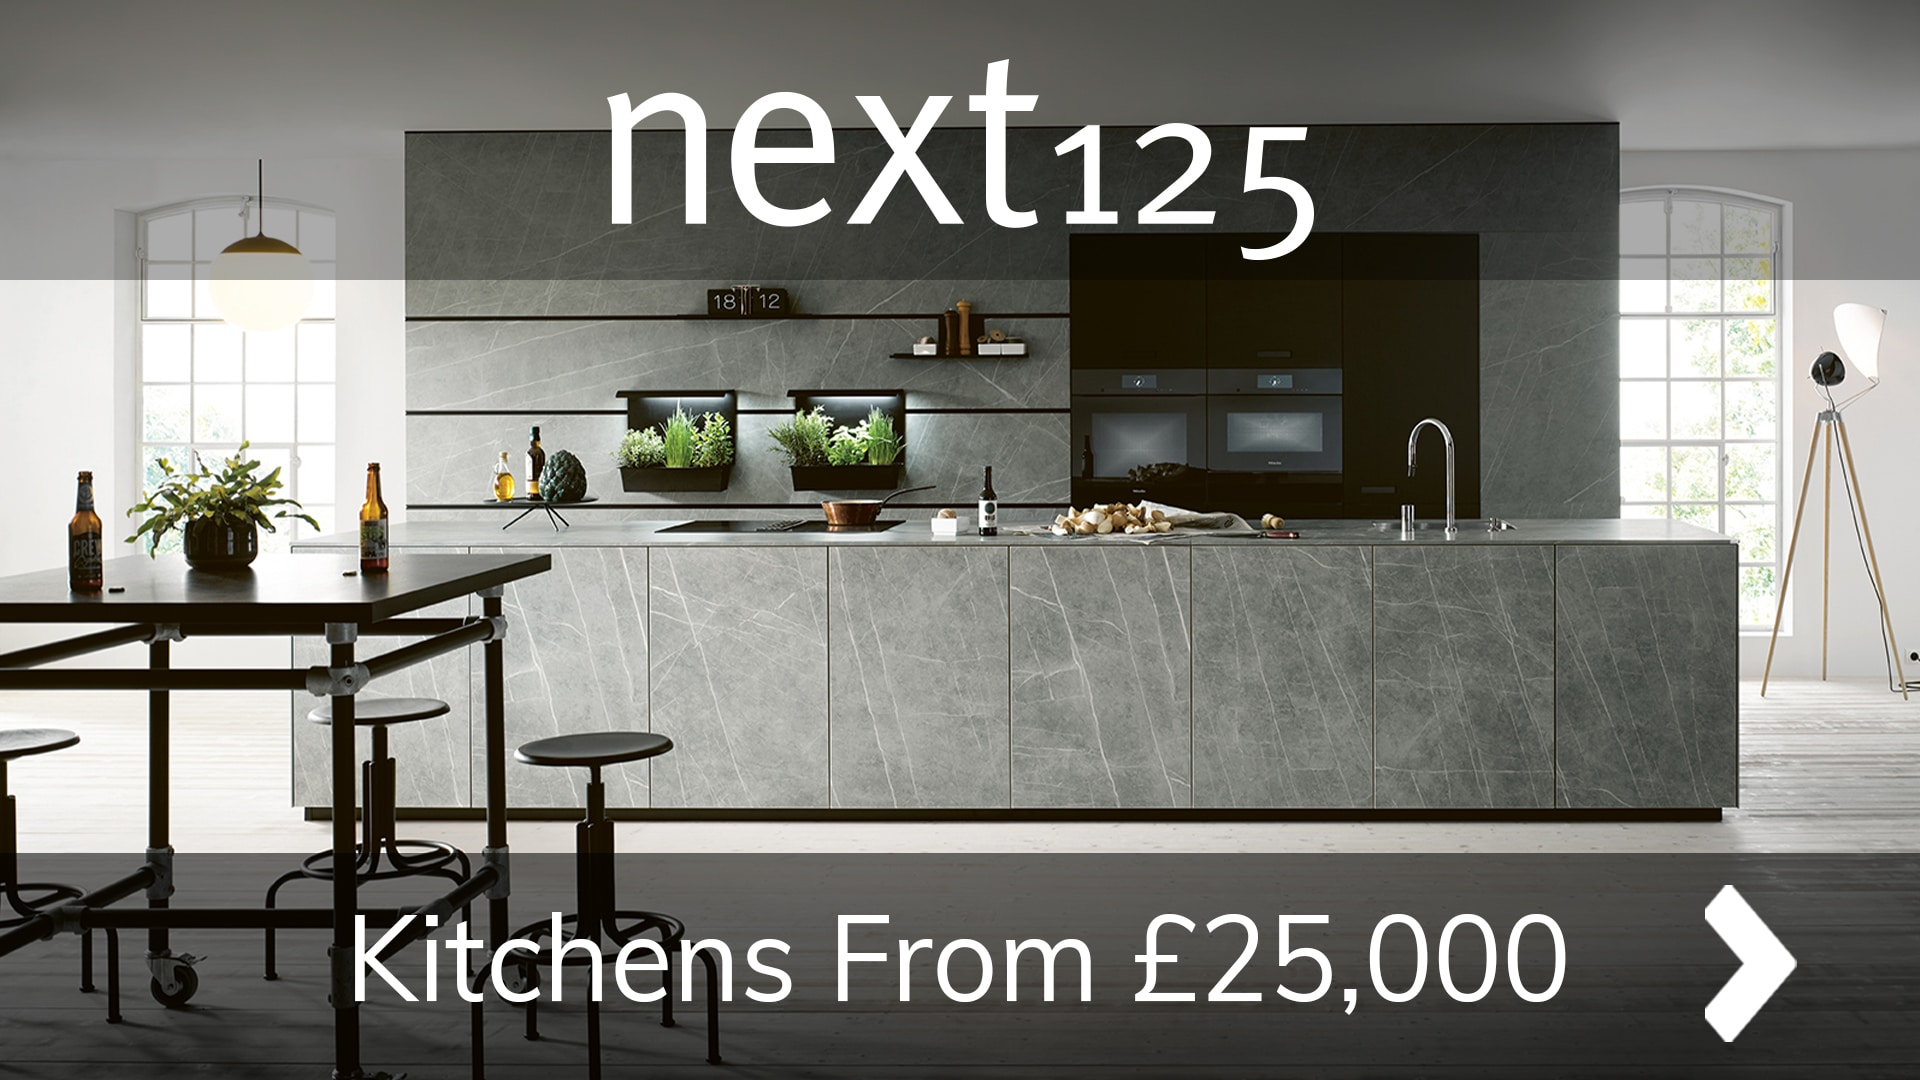 designer kitchens cardiff - next 125 kitchens 001